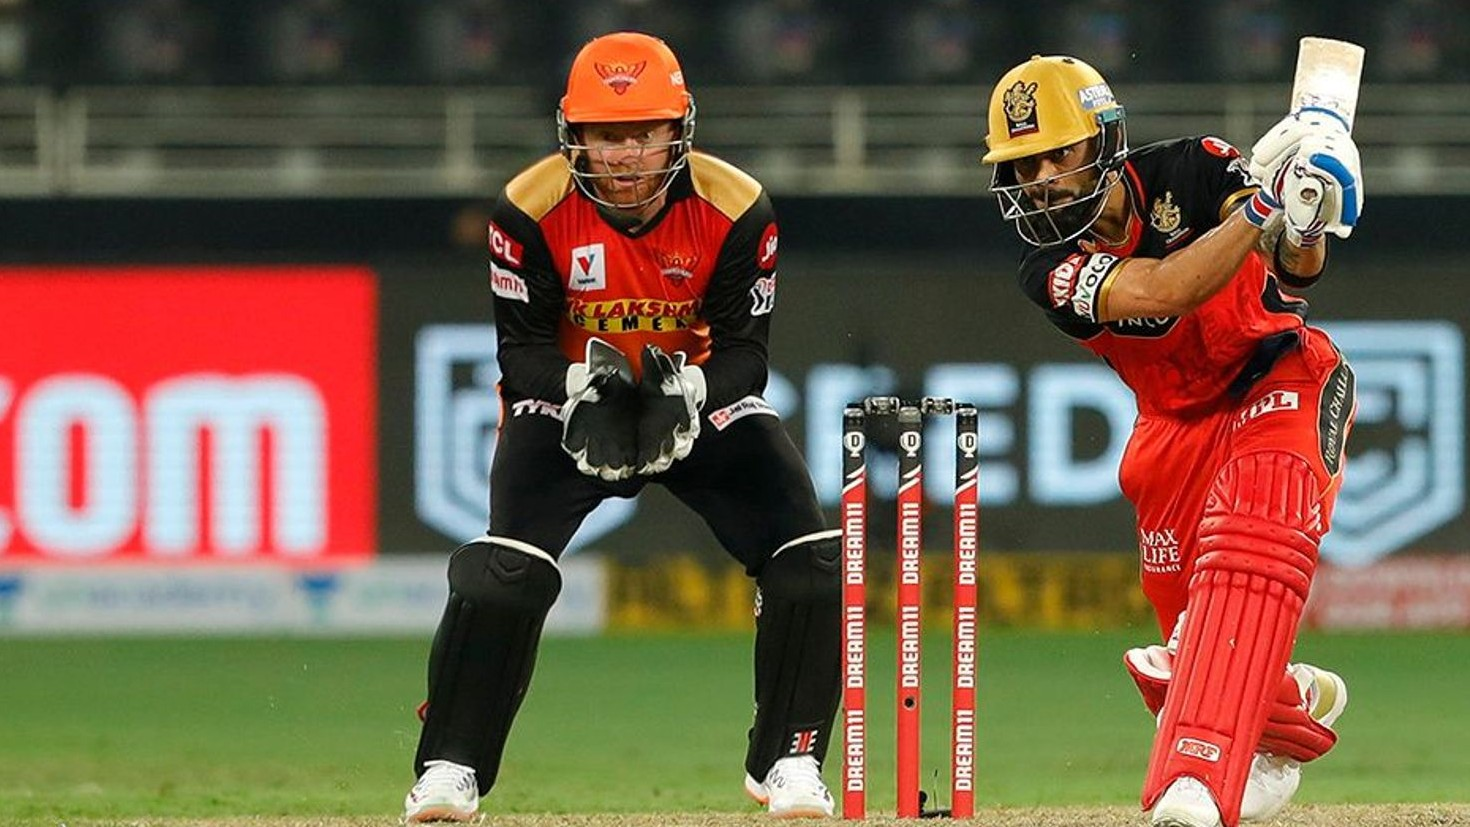 IPL 2020: Match 52, RCB v SRH - Statistical Preview of the Match